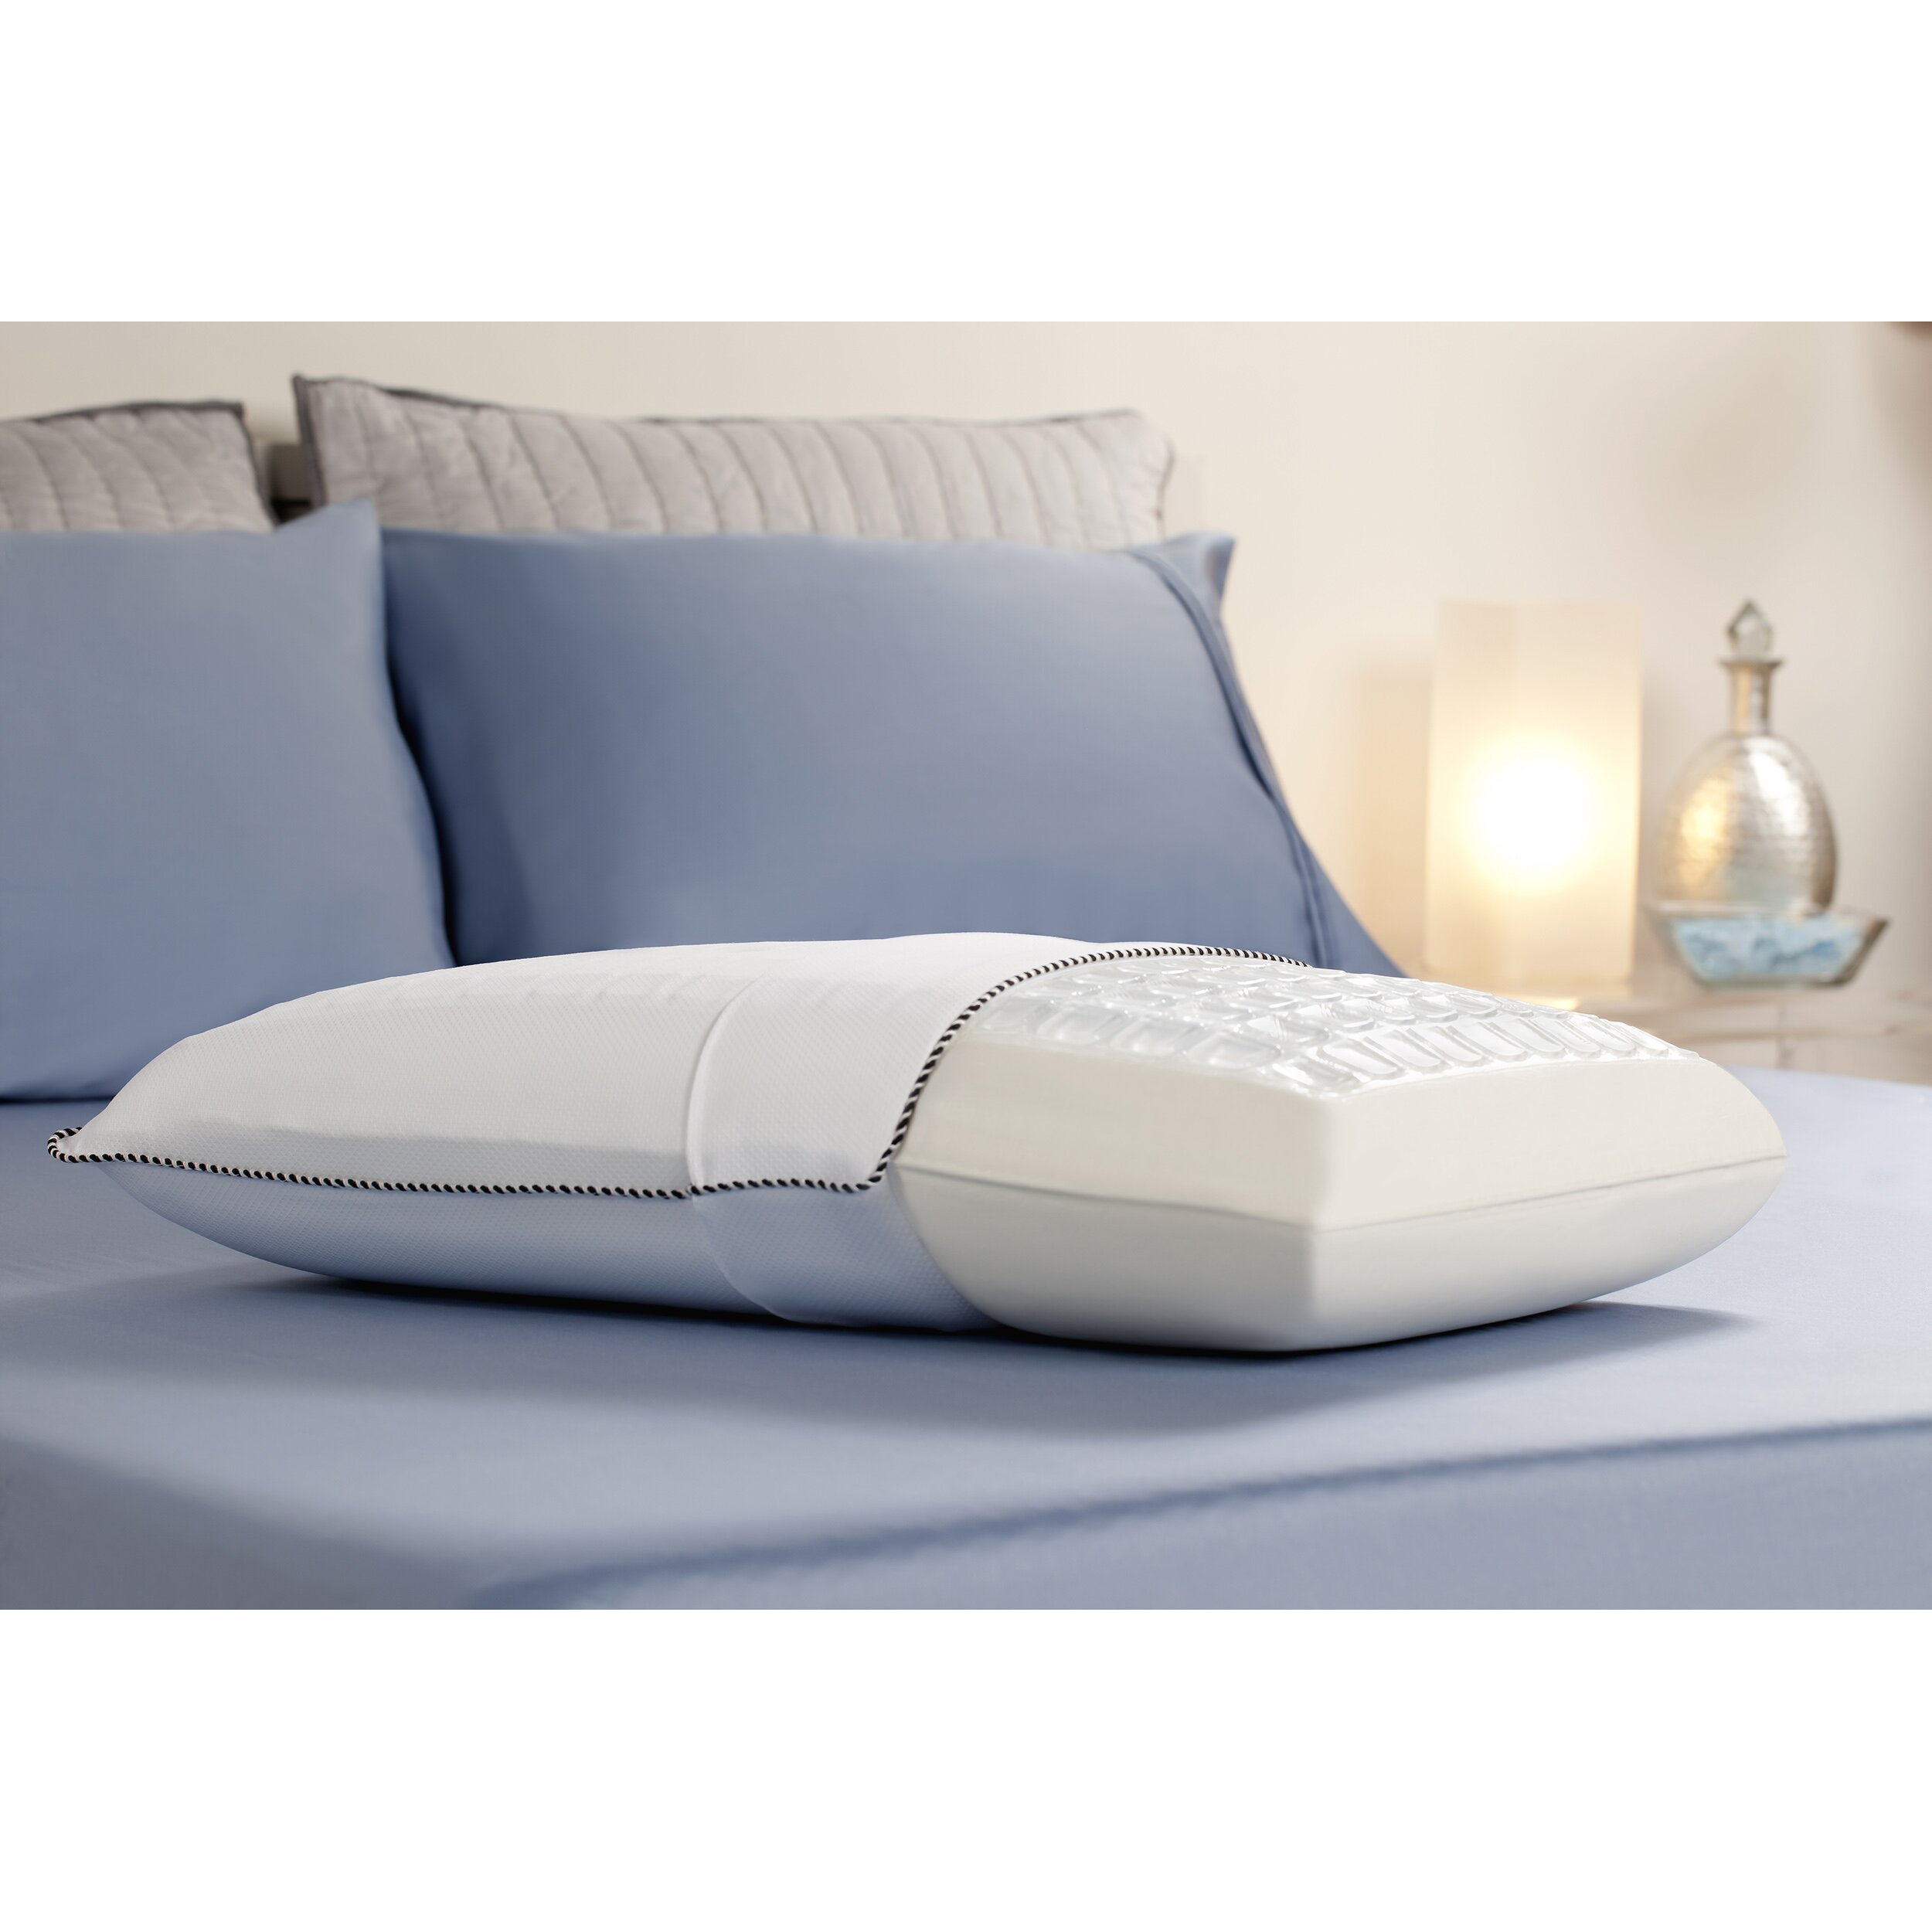 Comfort revolution cooling cube bed pillow reviews wayfair for Comfort revolution mattress reviews